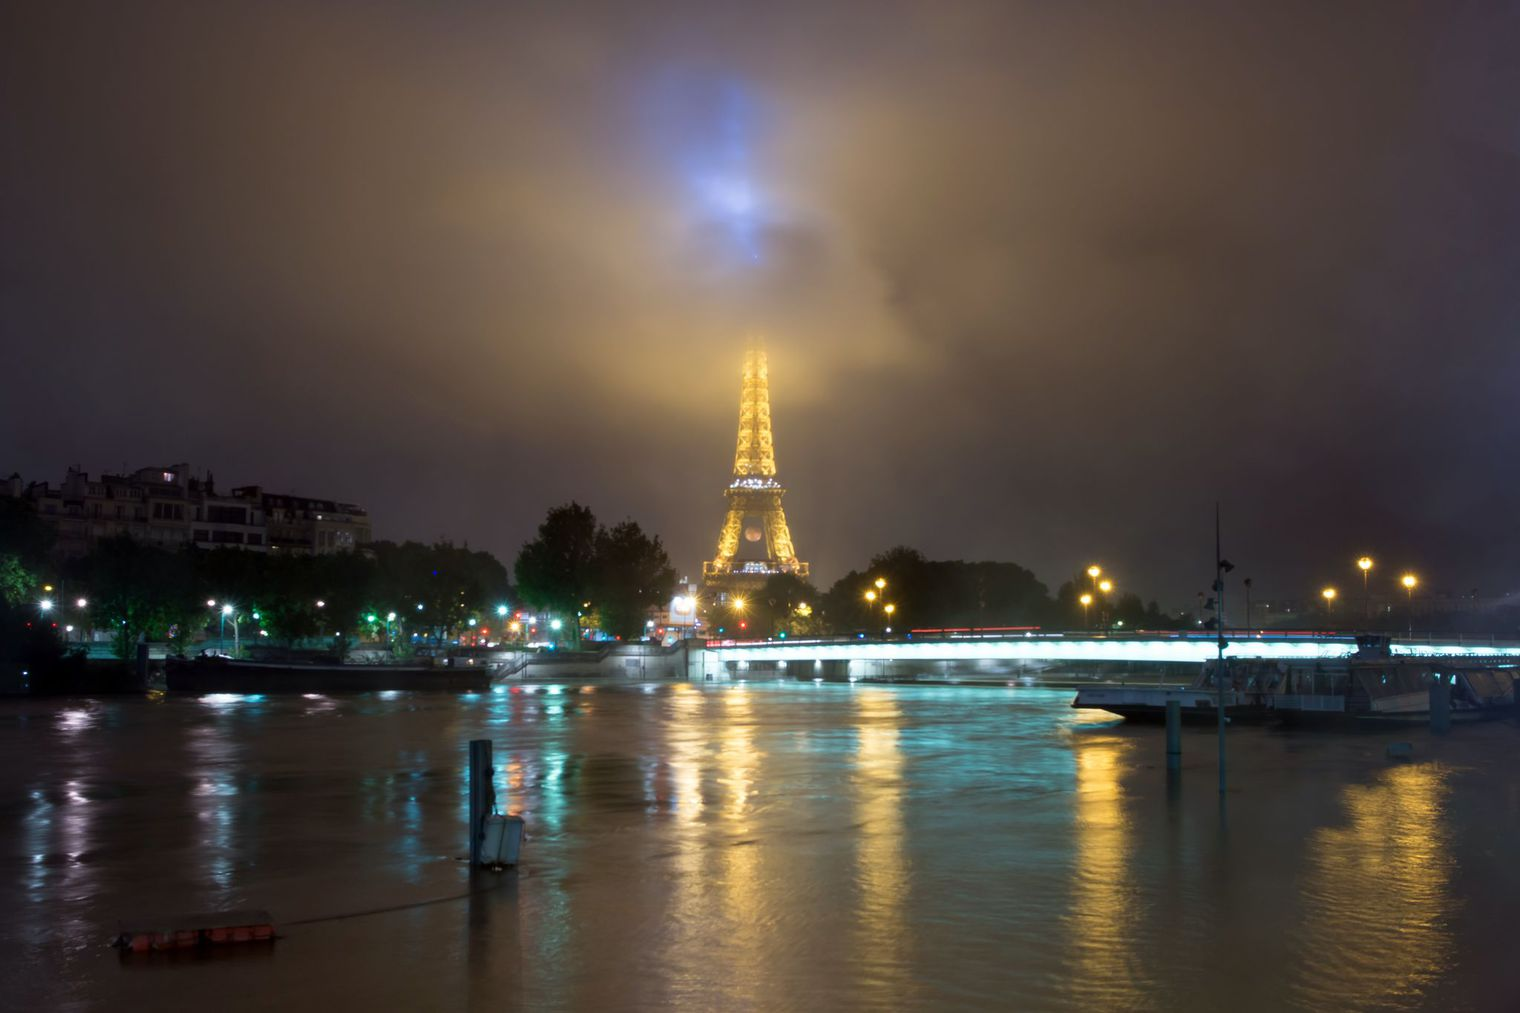 tour-eiffel-crue-seine_5609219_AFP PHOTO Laurent Kalfala (030616)